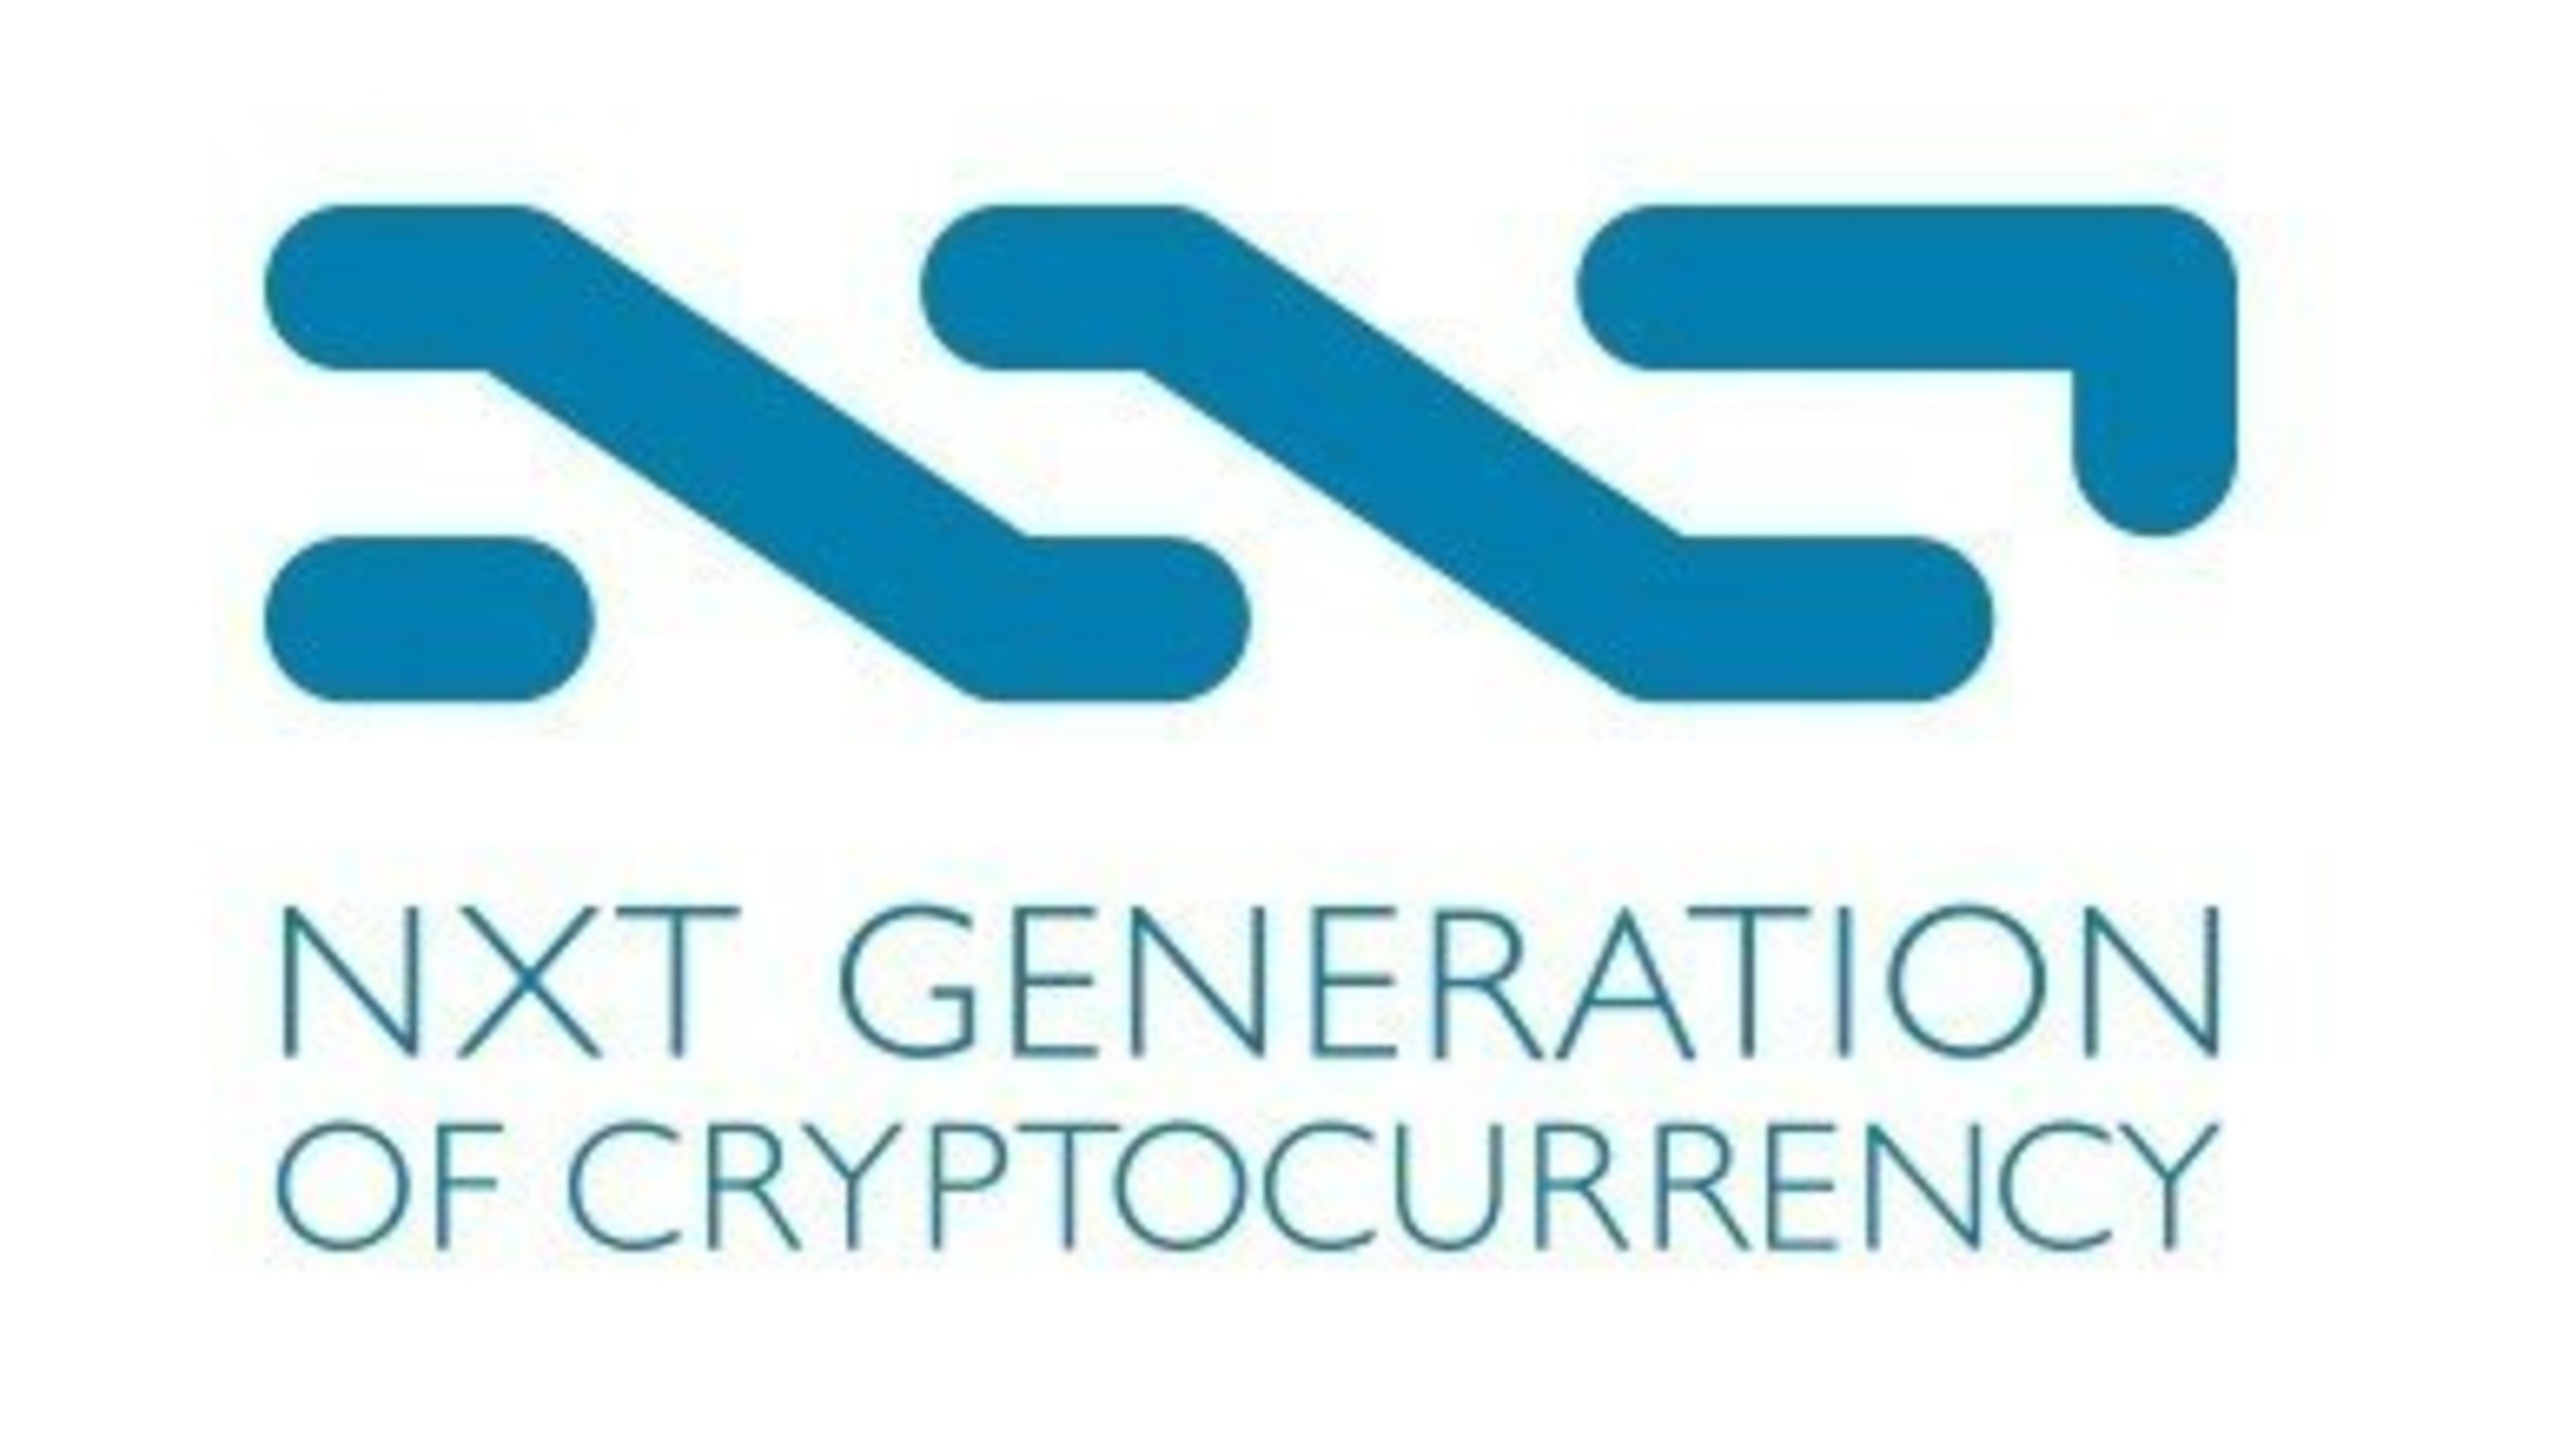 Bitcoin Alternative NXT Announces Coordinated Marketing Project Codenamed 'Project Tennessee'